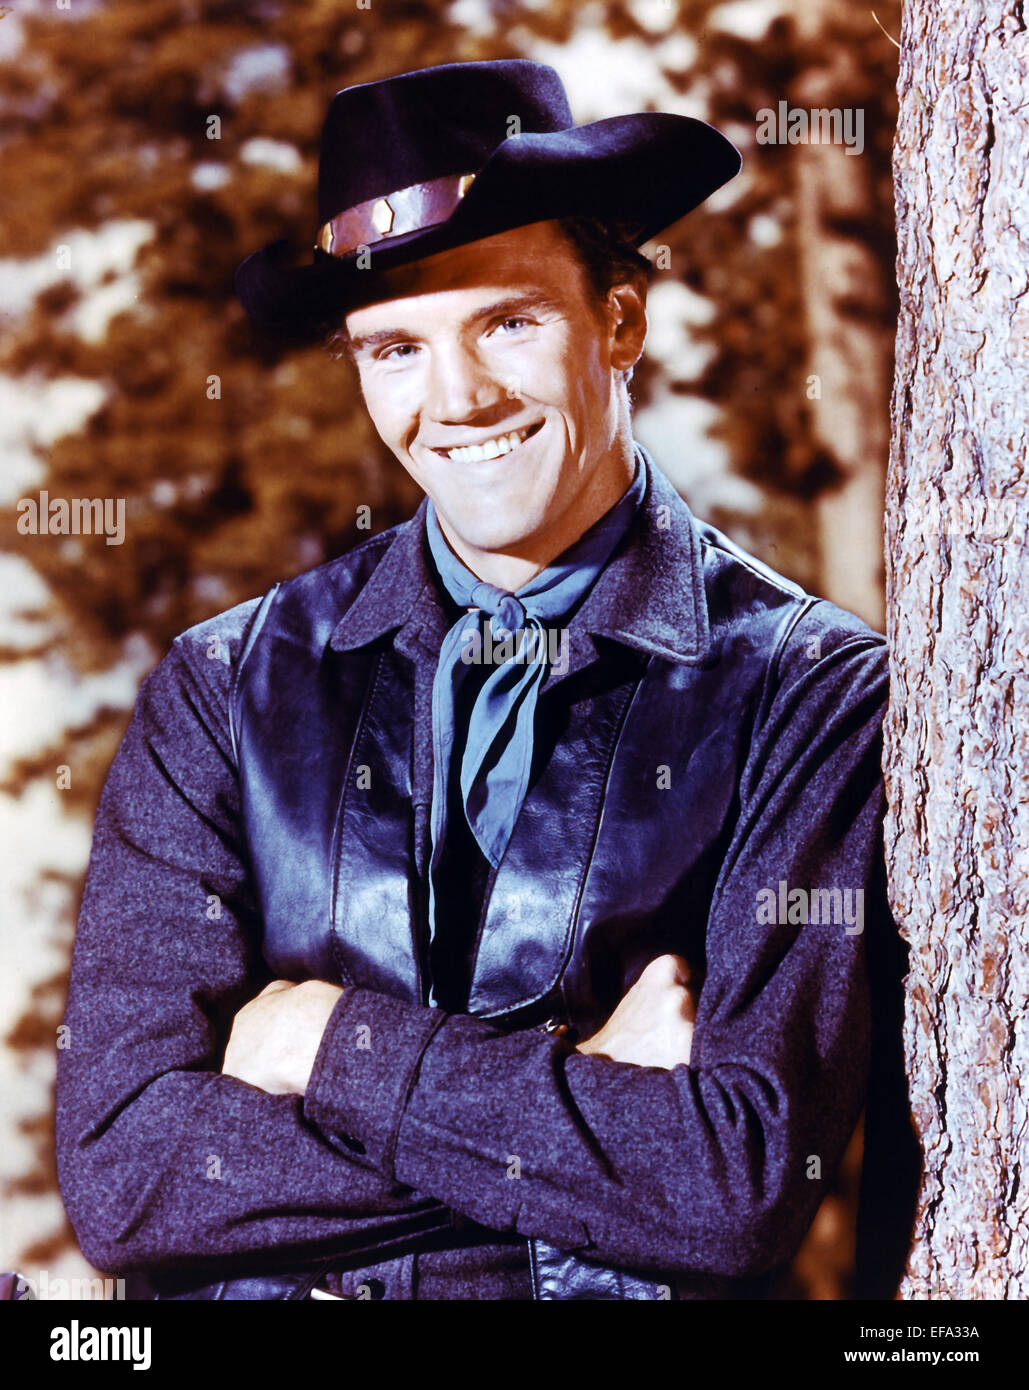 mitch vogel todaymitch vogel actor, mitch vogel parents, mitch vogel now, mitch vogel today, mitch vogel facebook, mitch vogel news, mitch vogel orchard hill, mitch vogel images, mitch vogel on bonanza, mitch vogel family, mitch vogel bonanza episodes, mitch vogel wife, mitch vogel pictures, mitch vogel photos, mitch vogel net worth, mitch vogel twitter, mitch vogel imdb, mitch vogel 2015, mitch vogel little house on the prairie, mitch vogel indianapolis